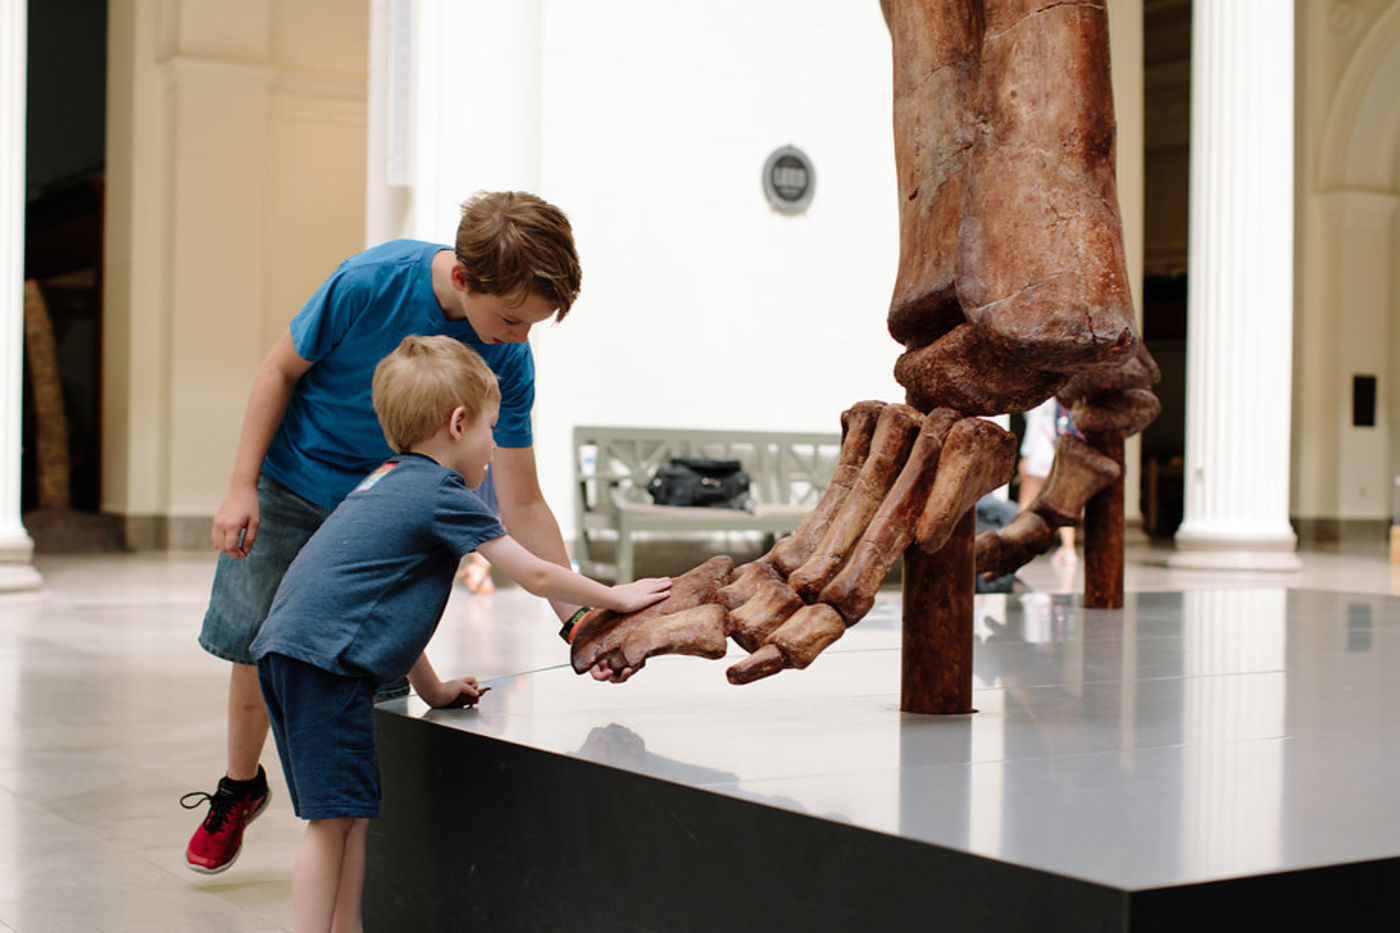 Two young visitors reach down to touch the foot of Máximo, a cast of the largest dinosaur ever discovered. The foot is raised on a black platform and the two visitors learn forward to touch the front of the foot.